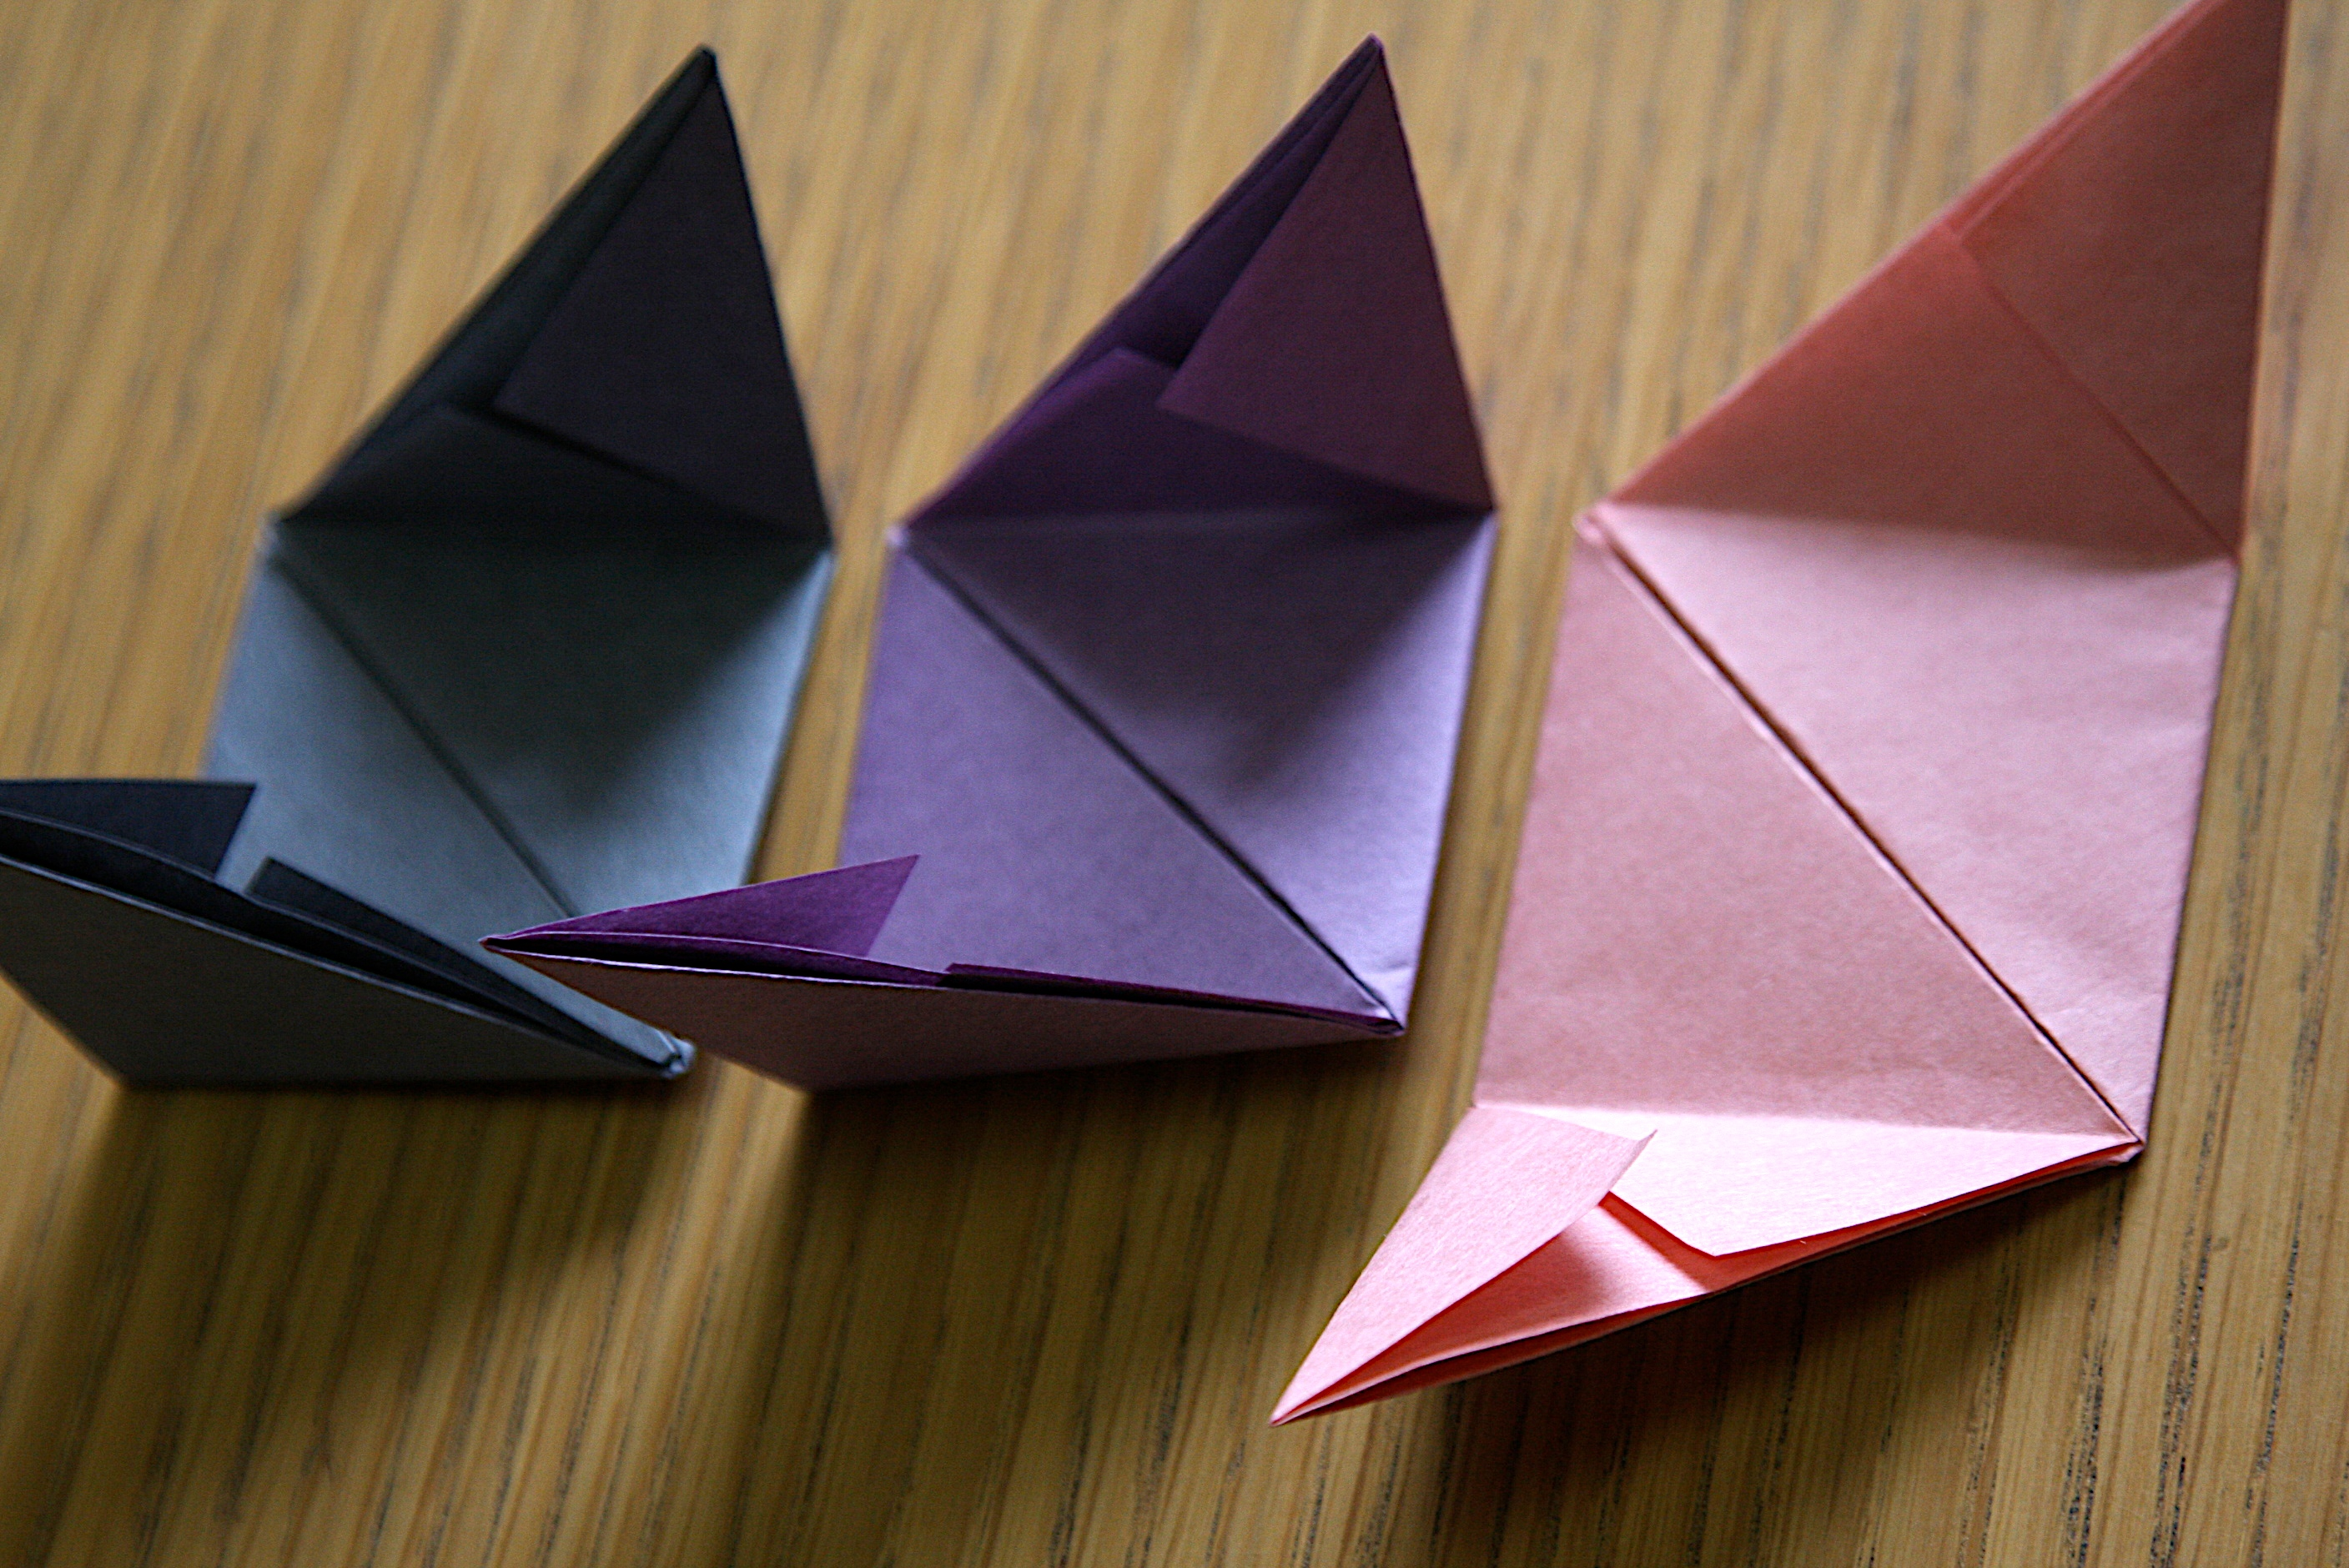 Take Two Pieces And Insert A Triangle From One Paper Into The Opening On Square Of Another